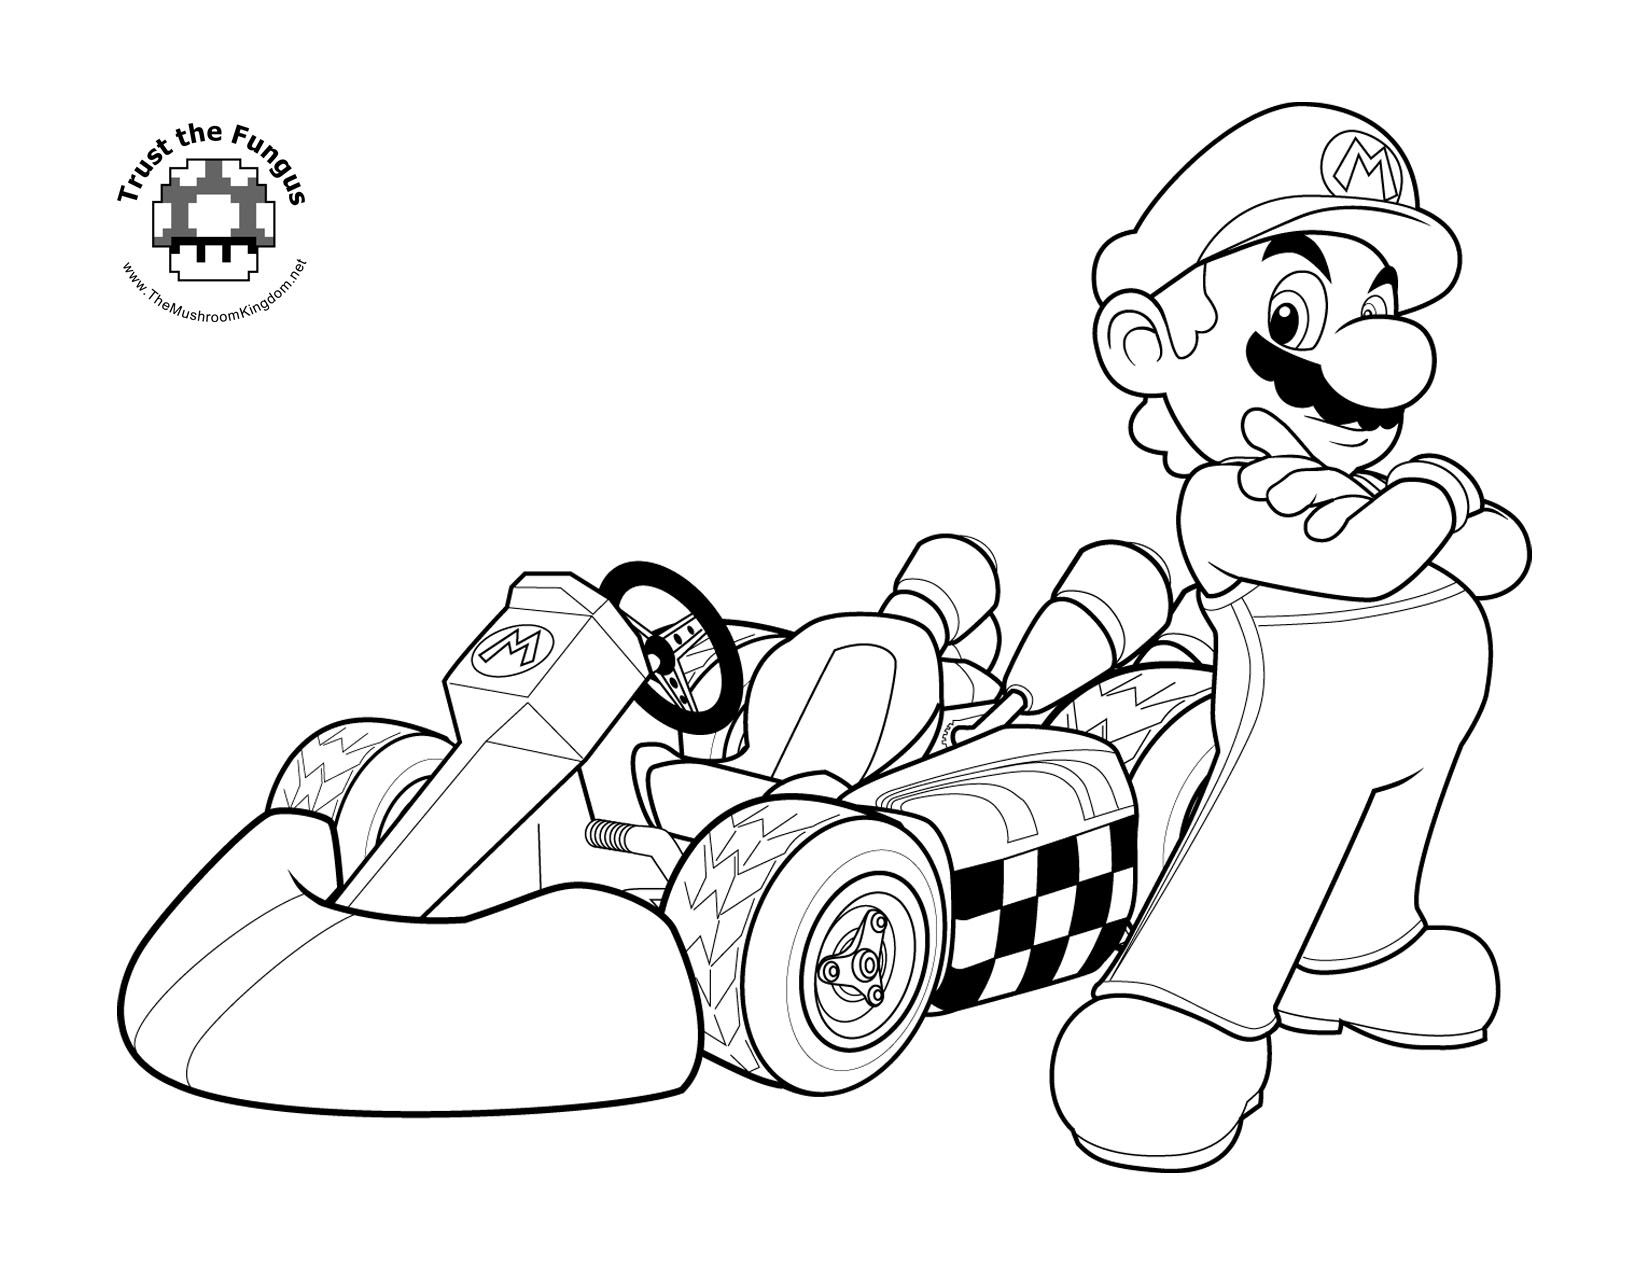 coloring pages super mario - tmk blog